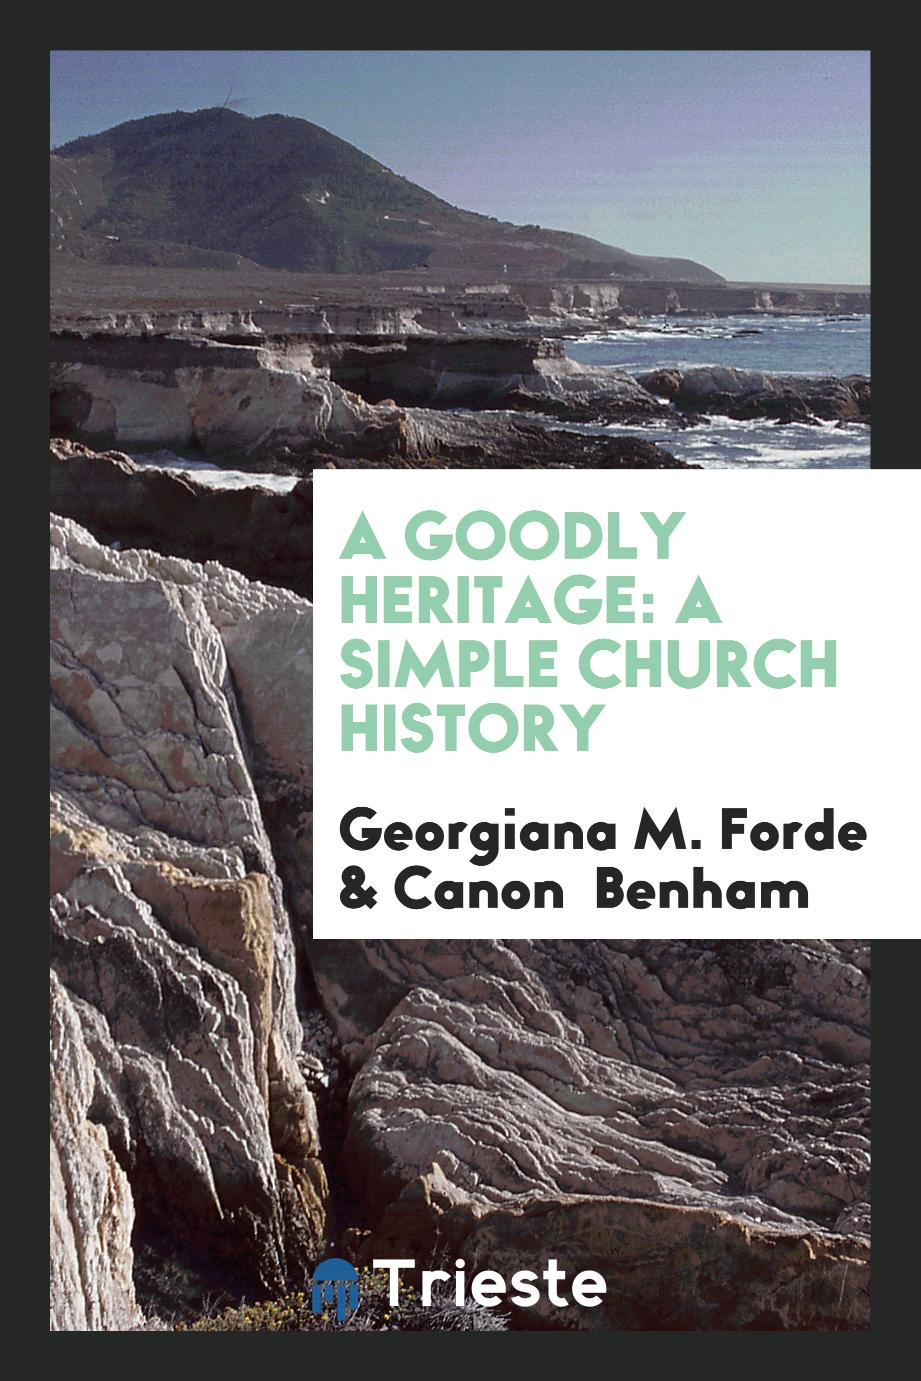 A Goodly Heritage: A Simple Church History